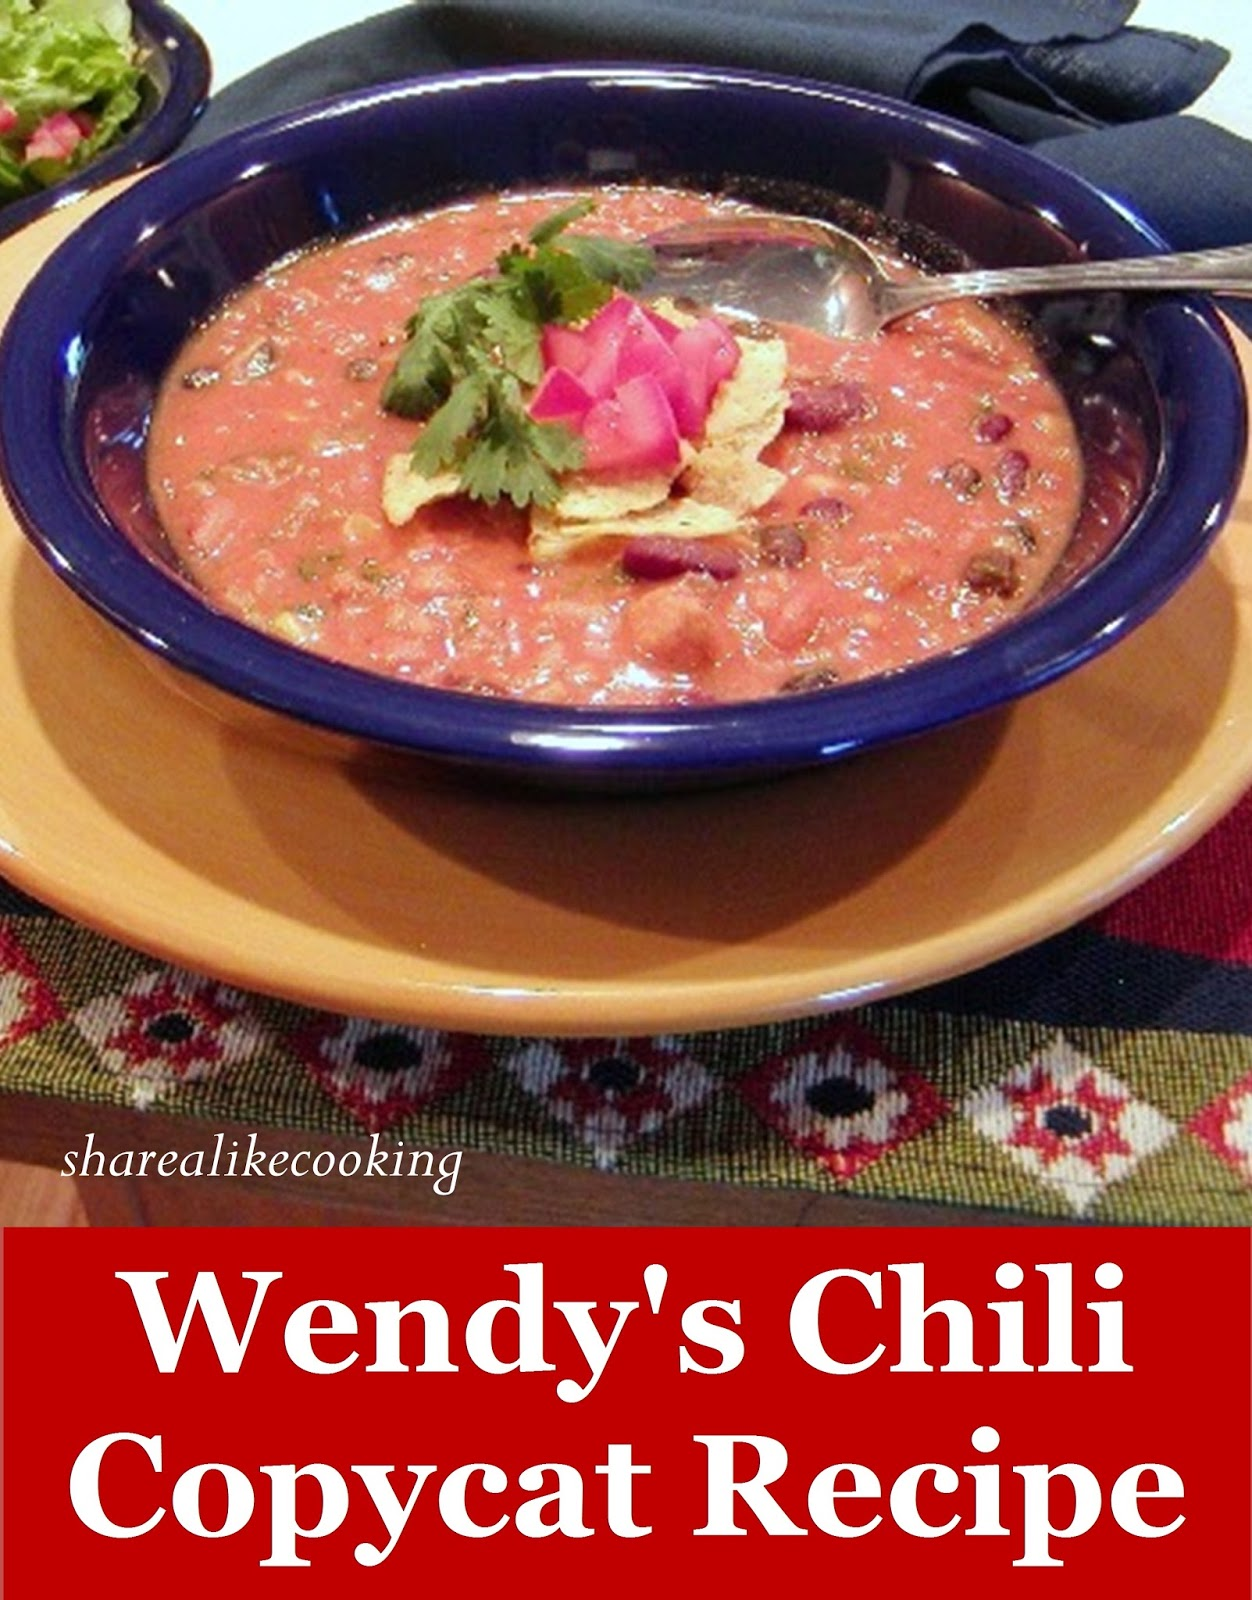 wendy s chili a costing conundrum Cases in management accounting and control systems by william rotch available in trade paperback on powellscom wendy's chili: a costing conundrum.